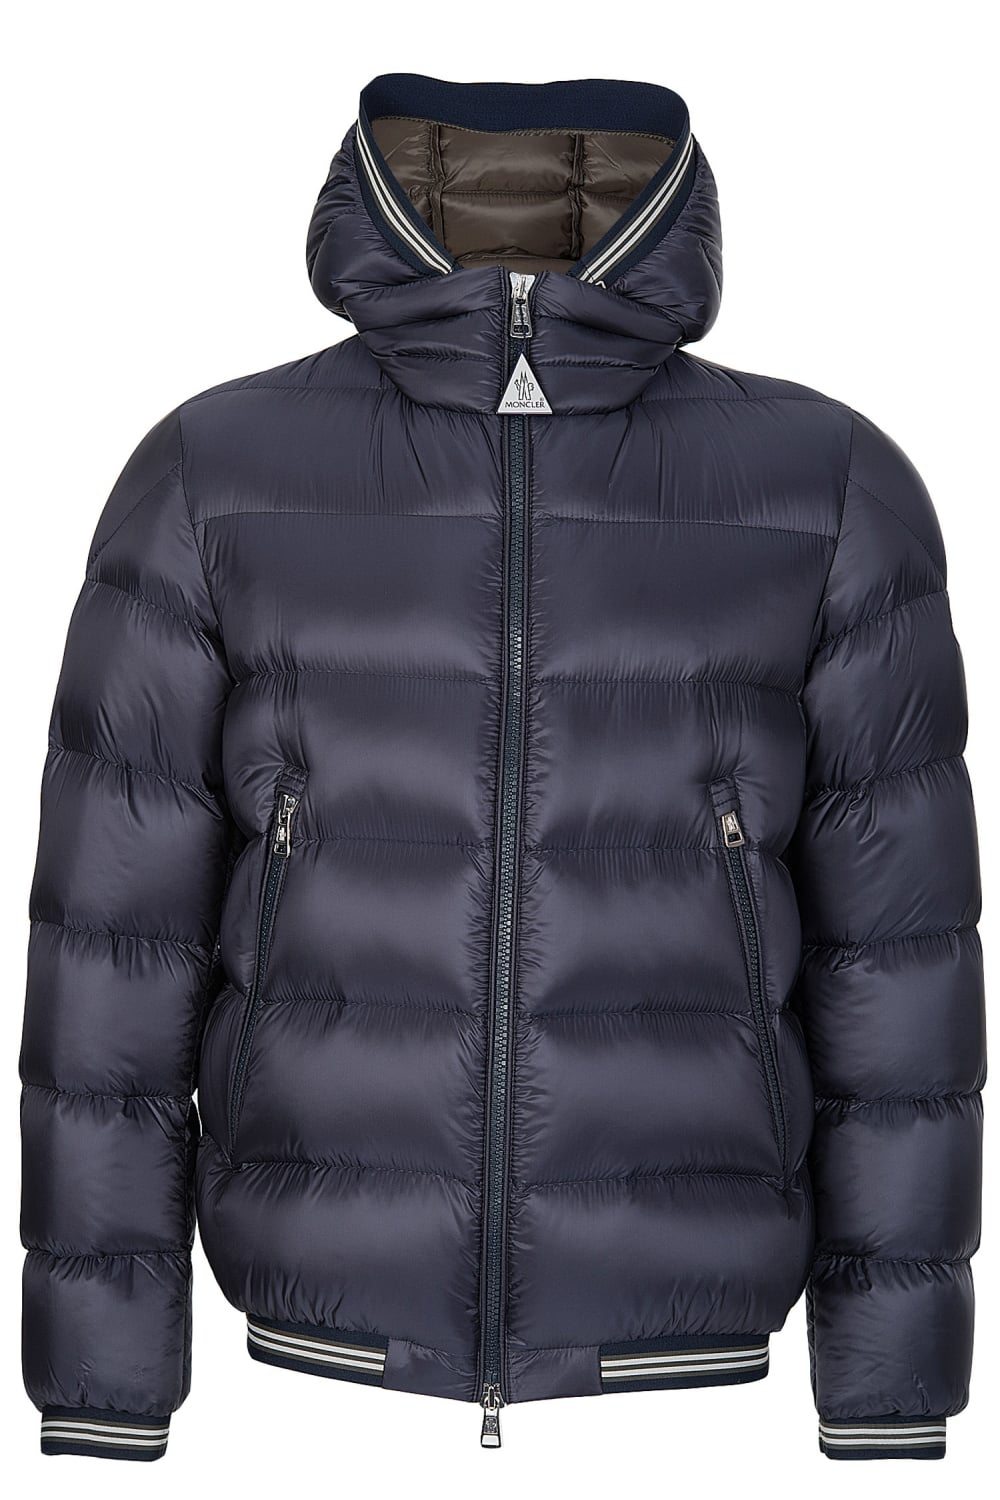 Moncler Moncler Jeanbart Jacket Navy Clothing From